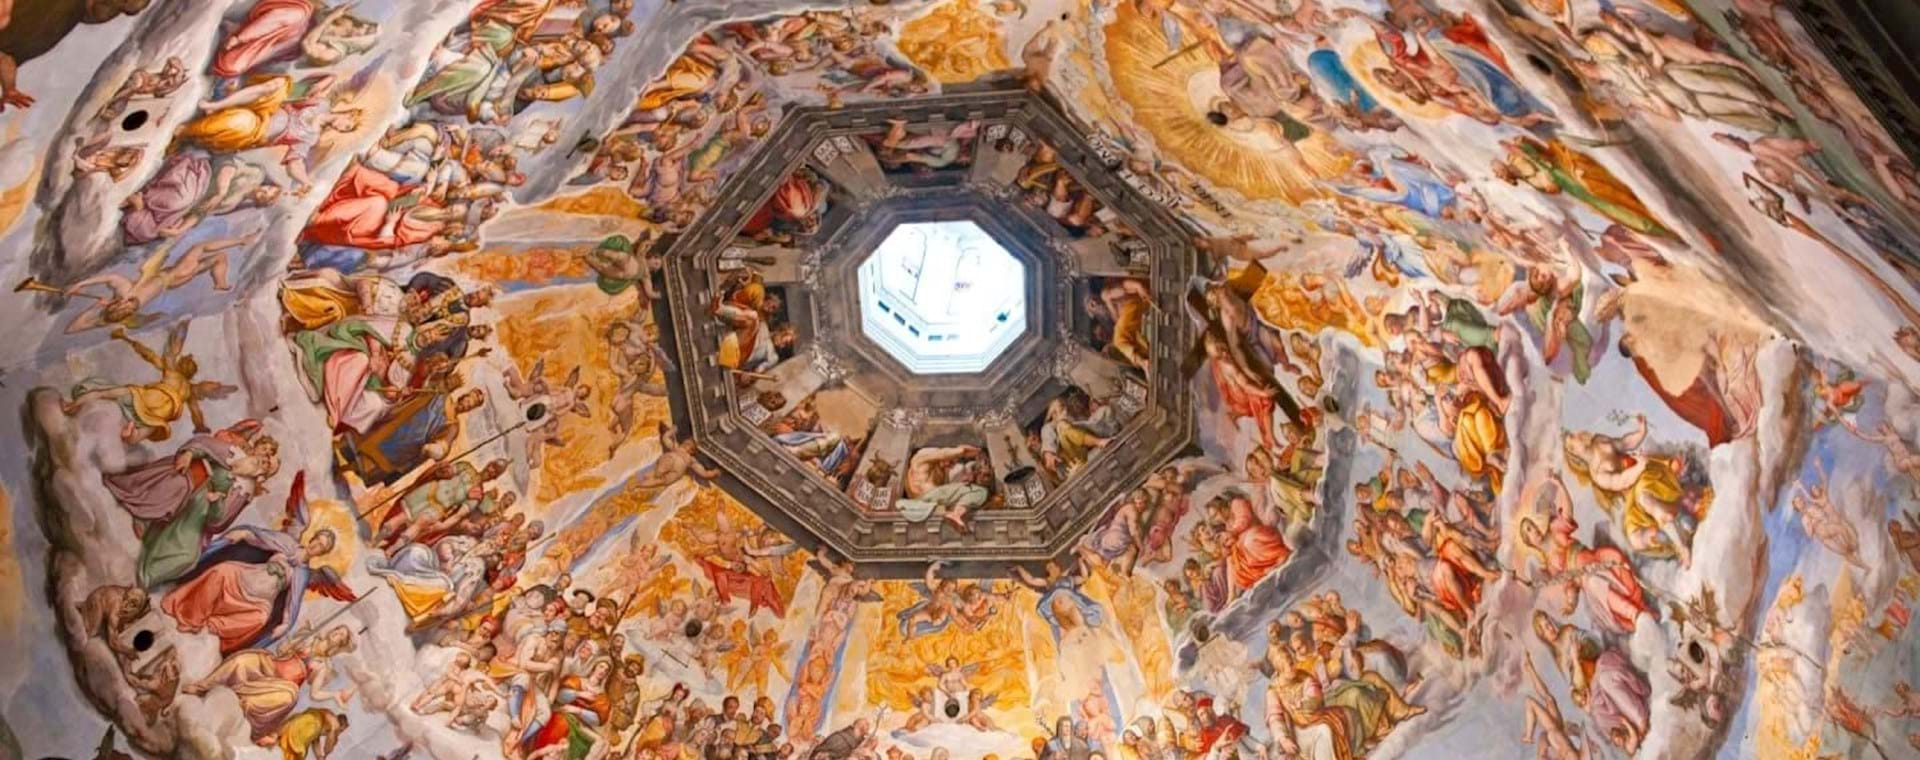 Semi-Private Florence Duomo Tour with Dome & Terrace Access plus Bell Tower Entry